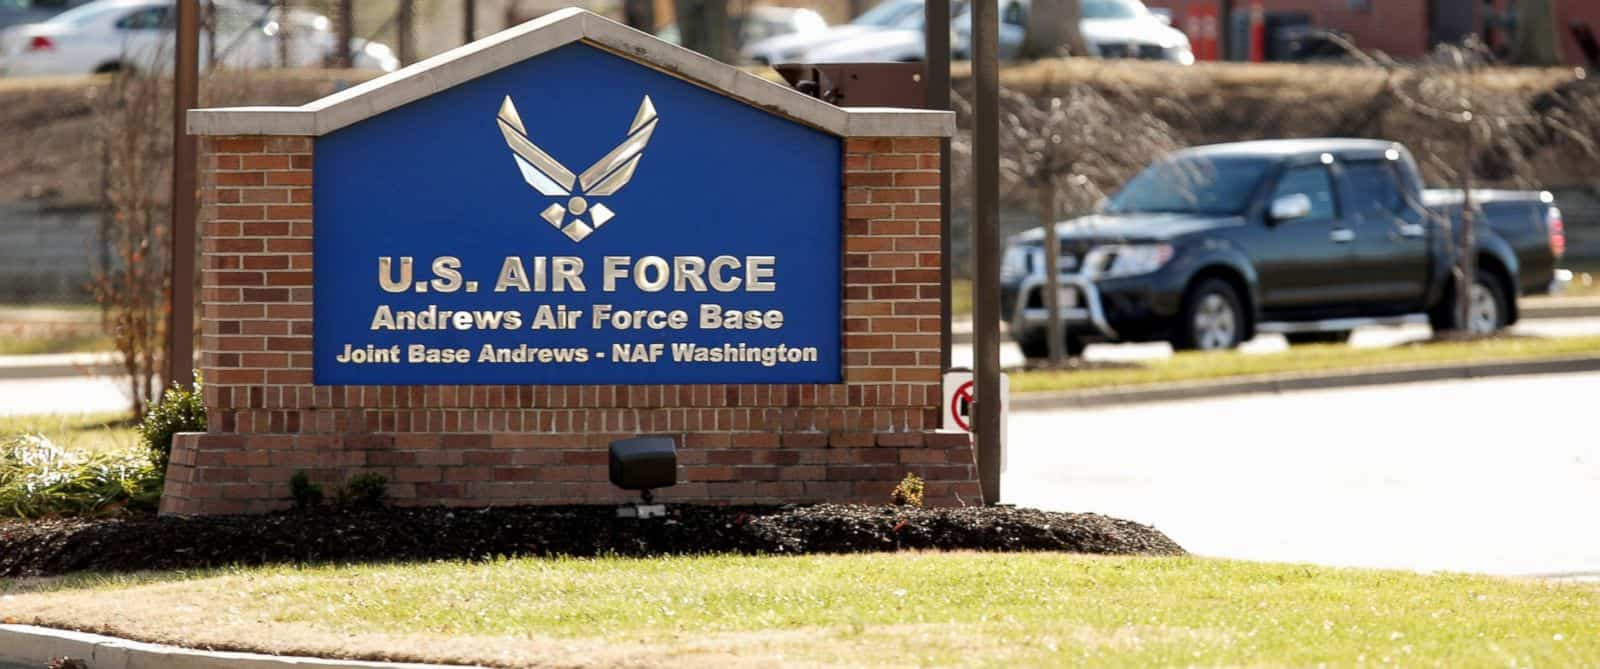 Andrews Air Force Base Was on Lockdown Early Today Because